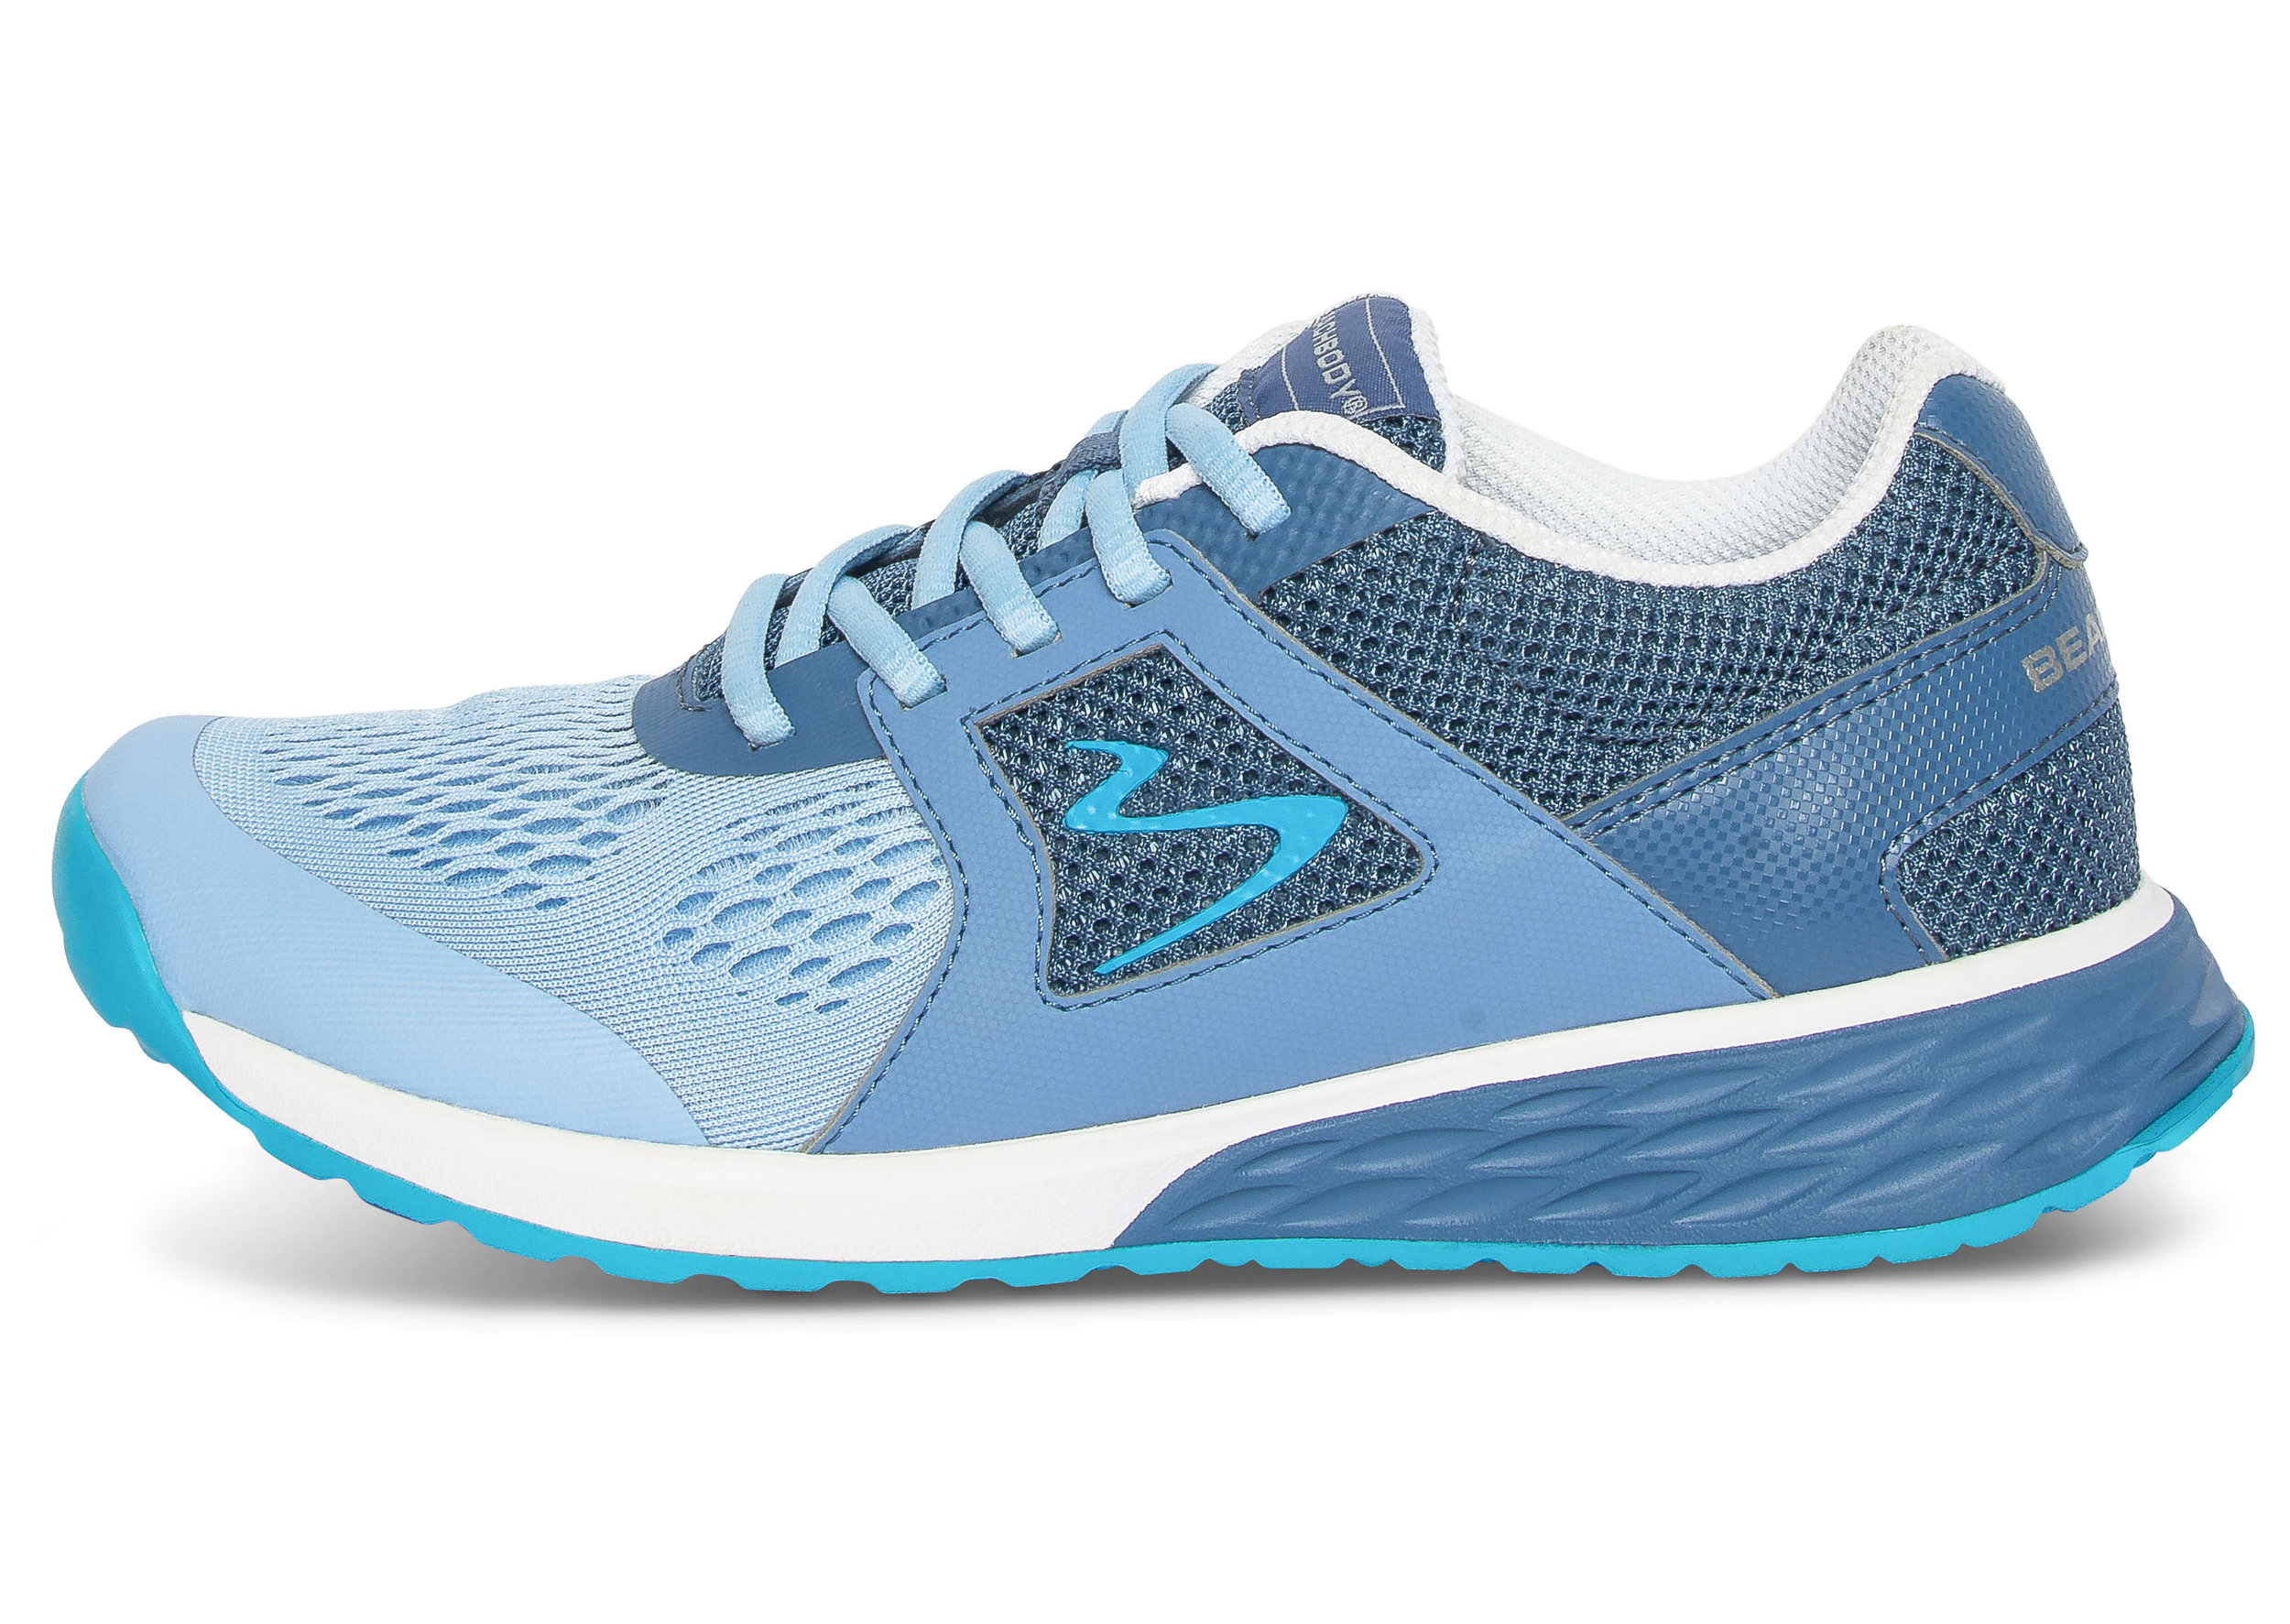 BEACHBODY WOMENS IGNITE BLUE DUSTY INDIGO ELECTRIC CYAN